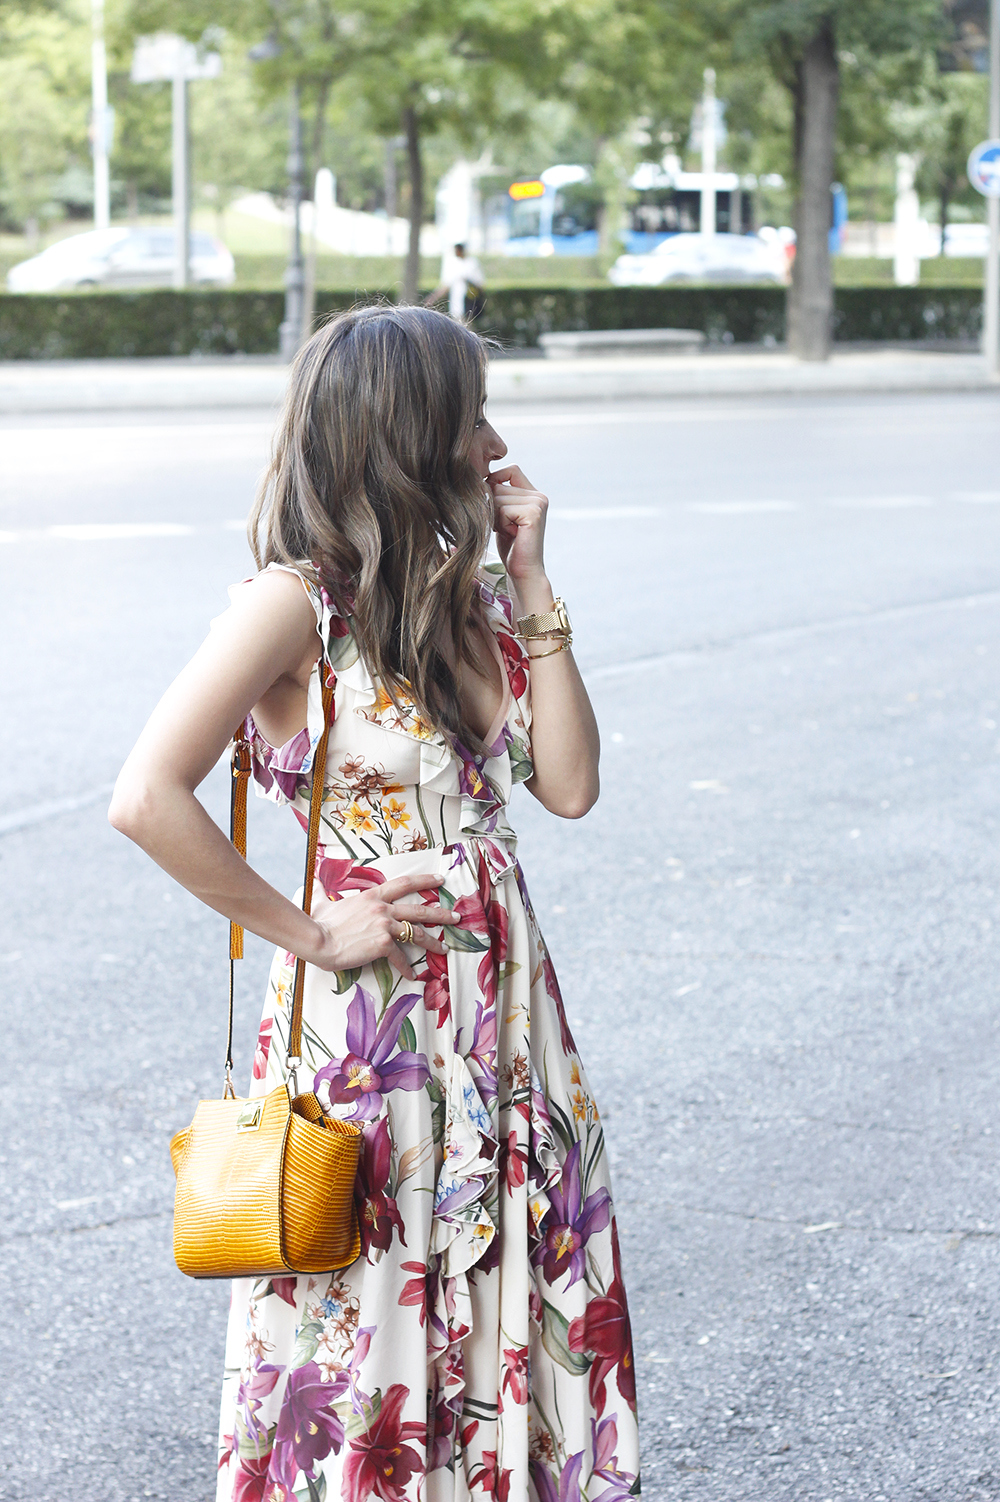 Maxi flower dress uterqüe mustard bag heels summer outfit style05